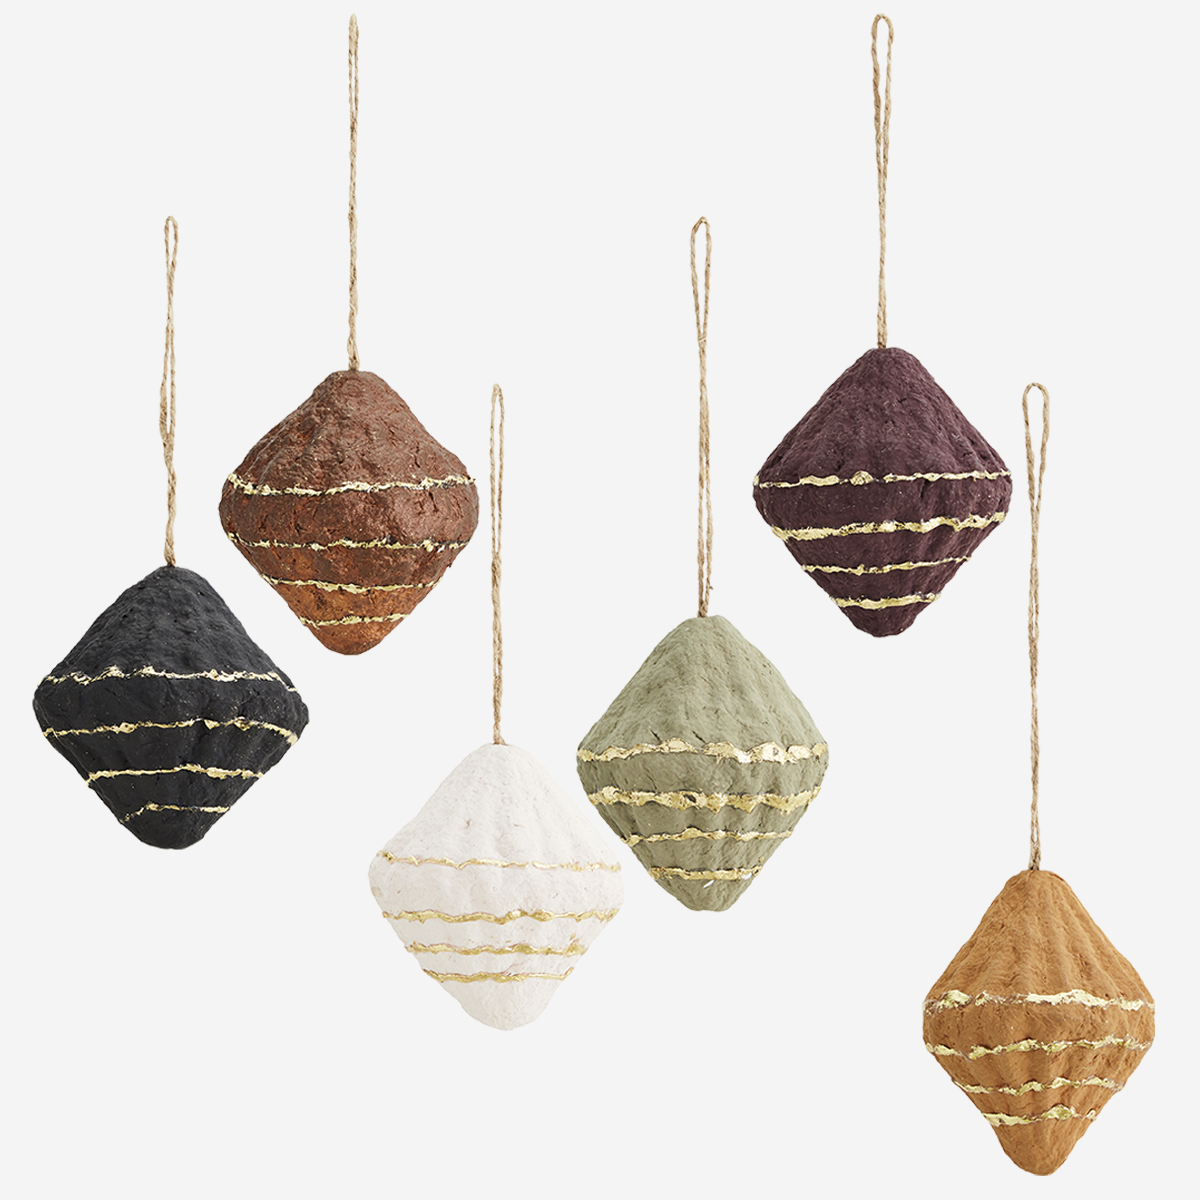 Hanging cotton paper cones